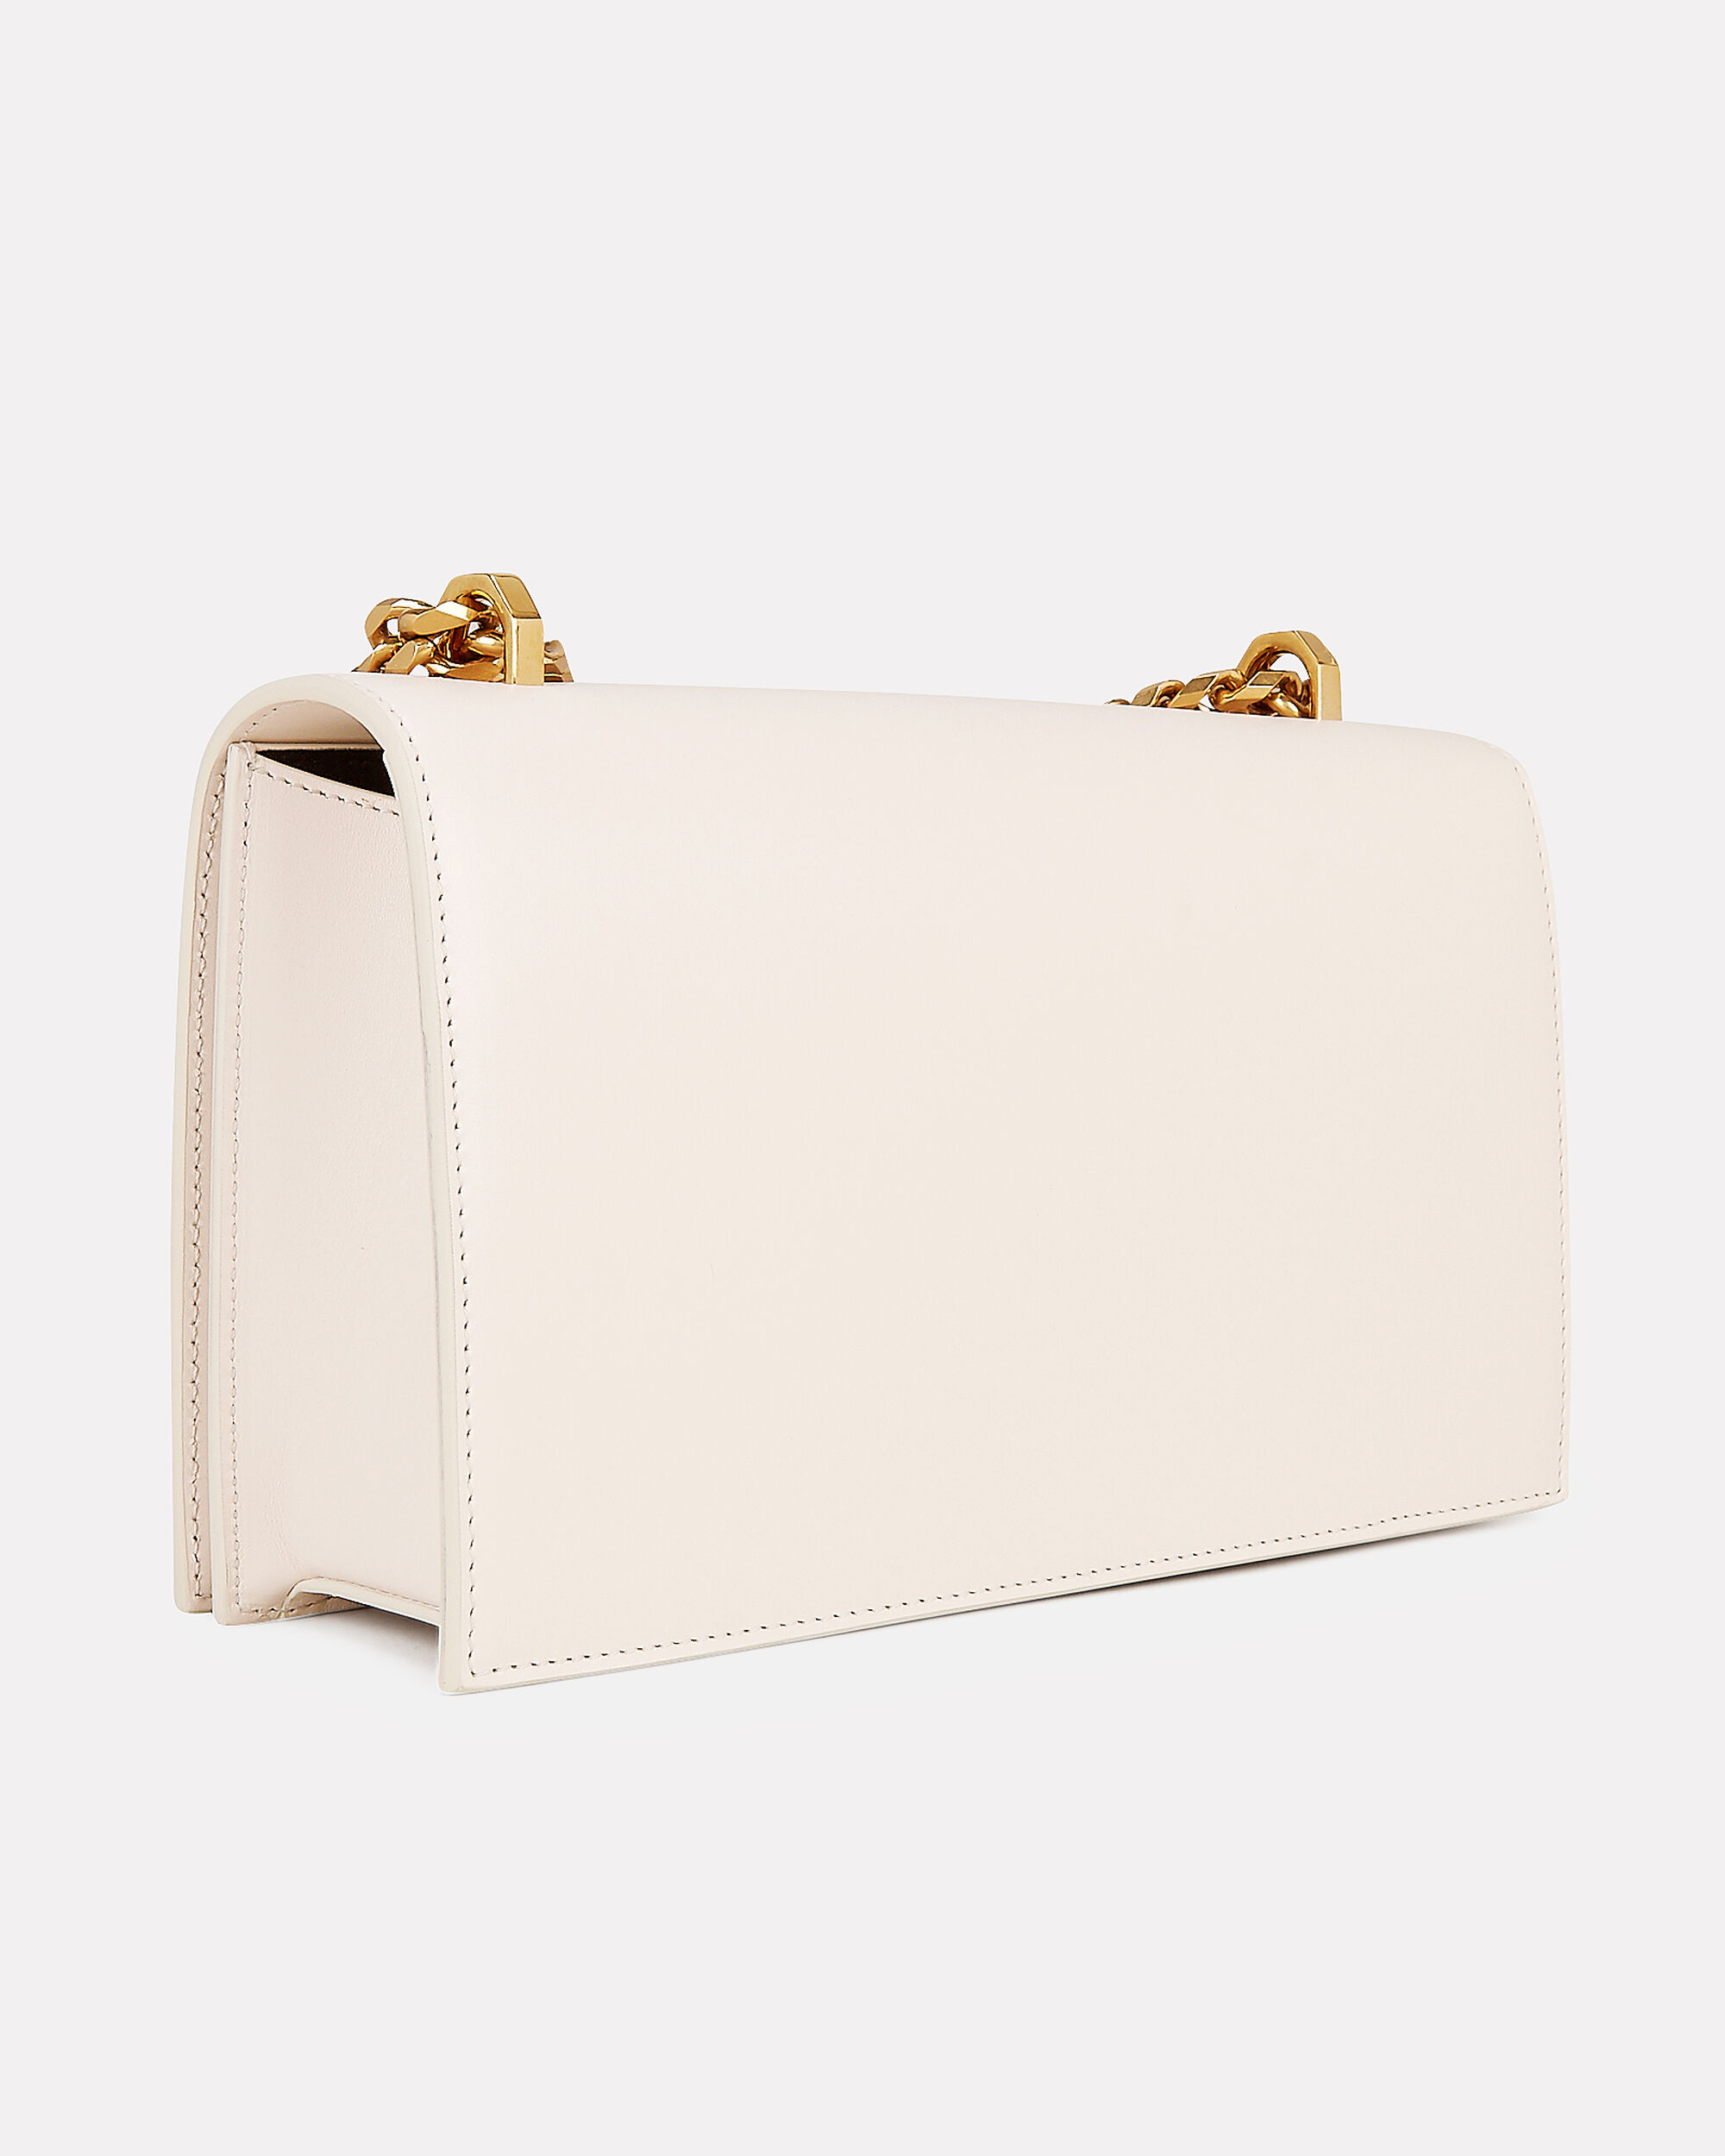 Jewel Knuckle Ivory Chain Strap Shoulder Bag, IVORY LEATHER, hi-res